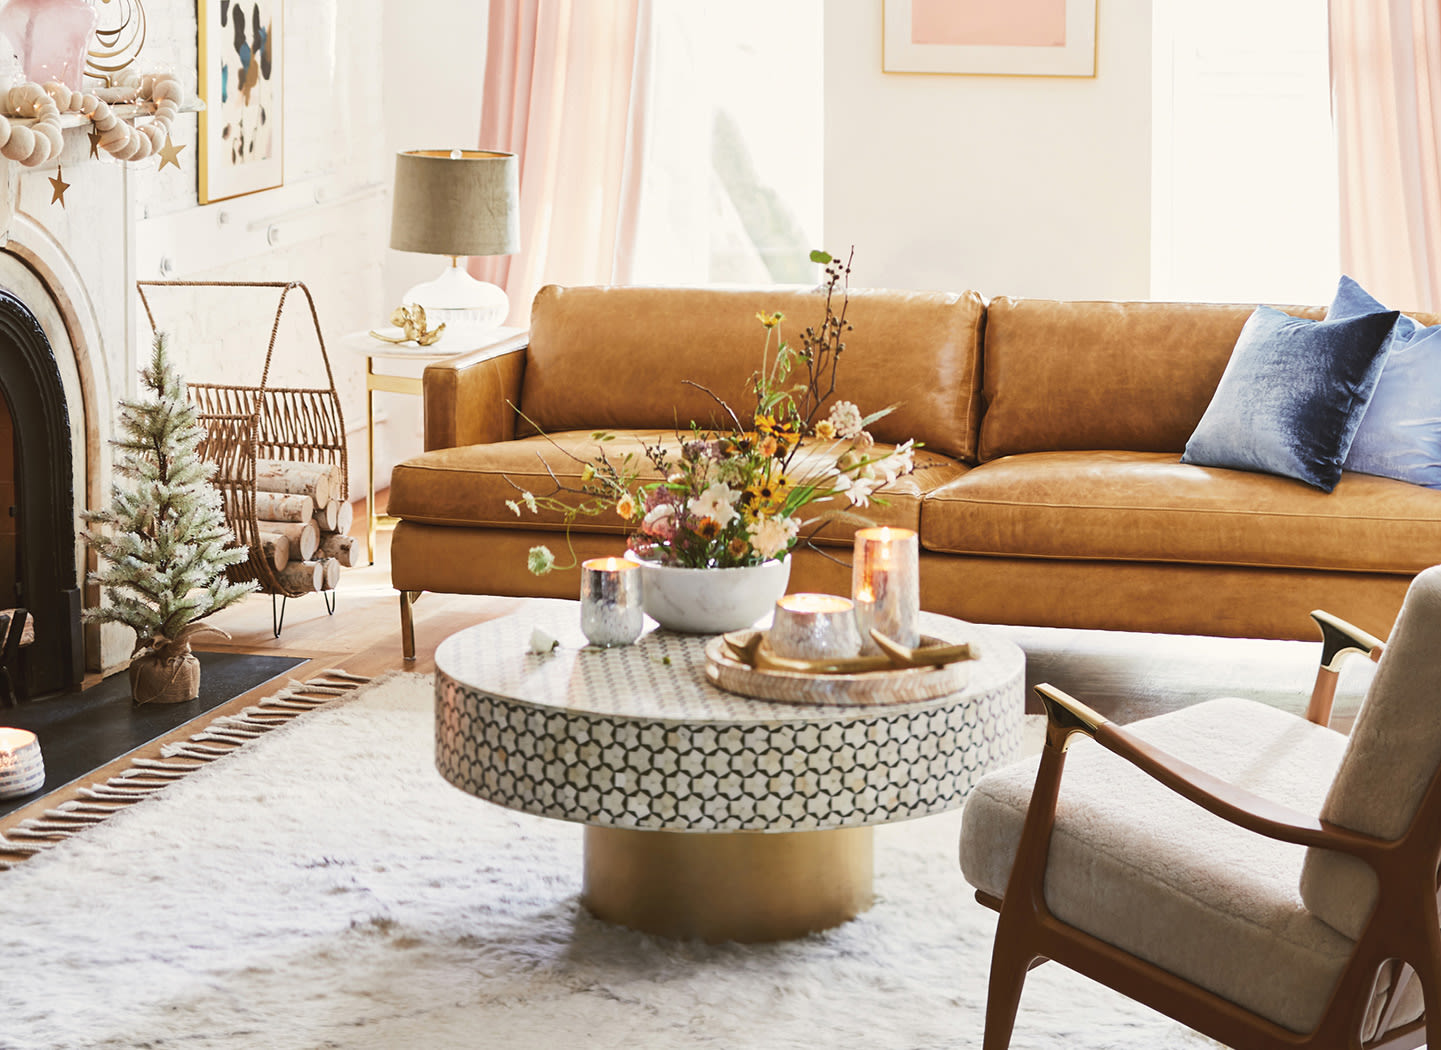 Small Living Room Ideas & Decorating | Anthropologie